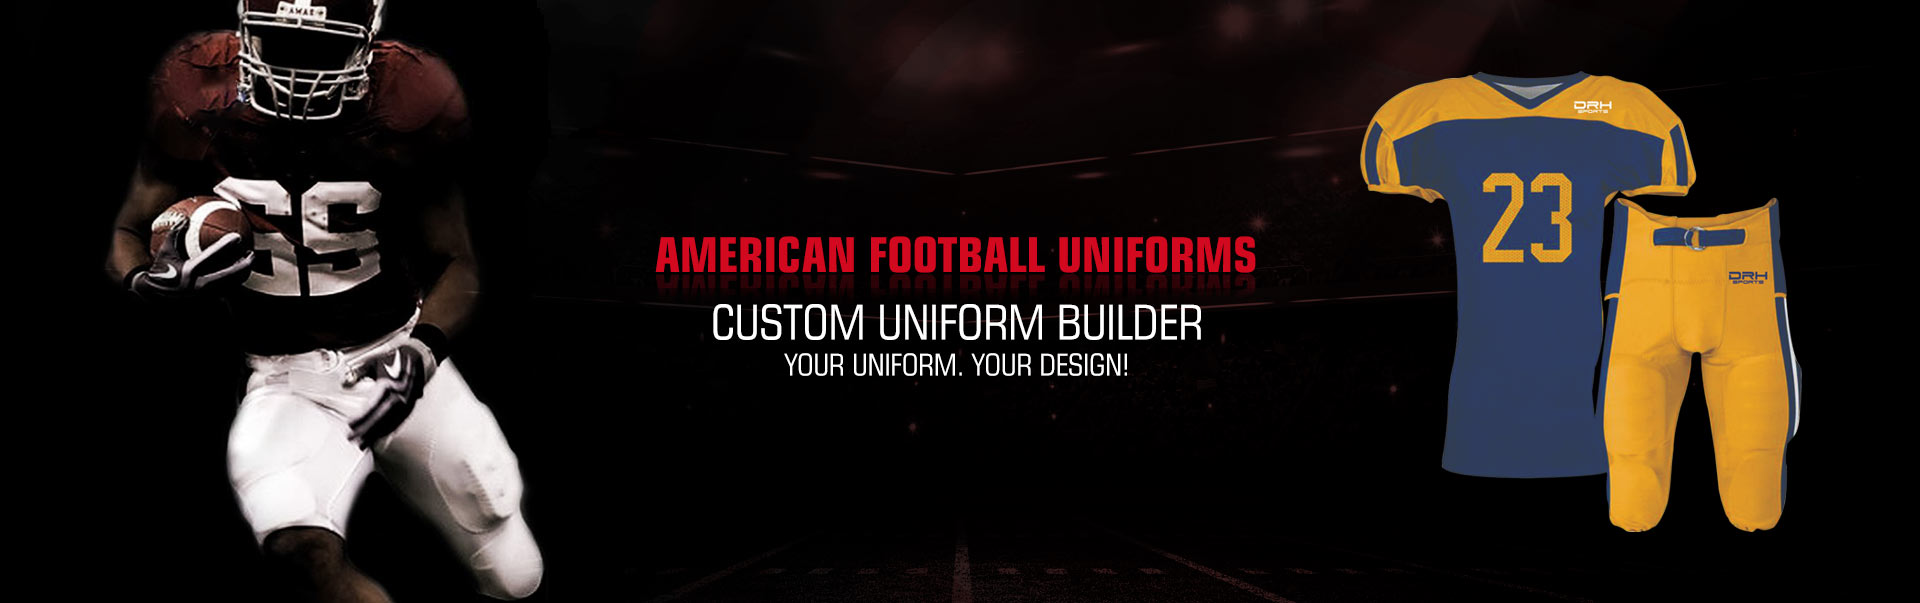 American Football Uniform Wholesaler, Suppliers in Brazil